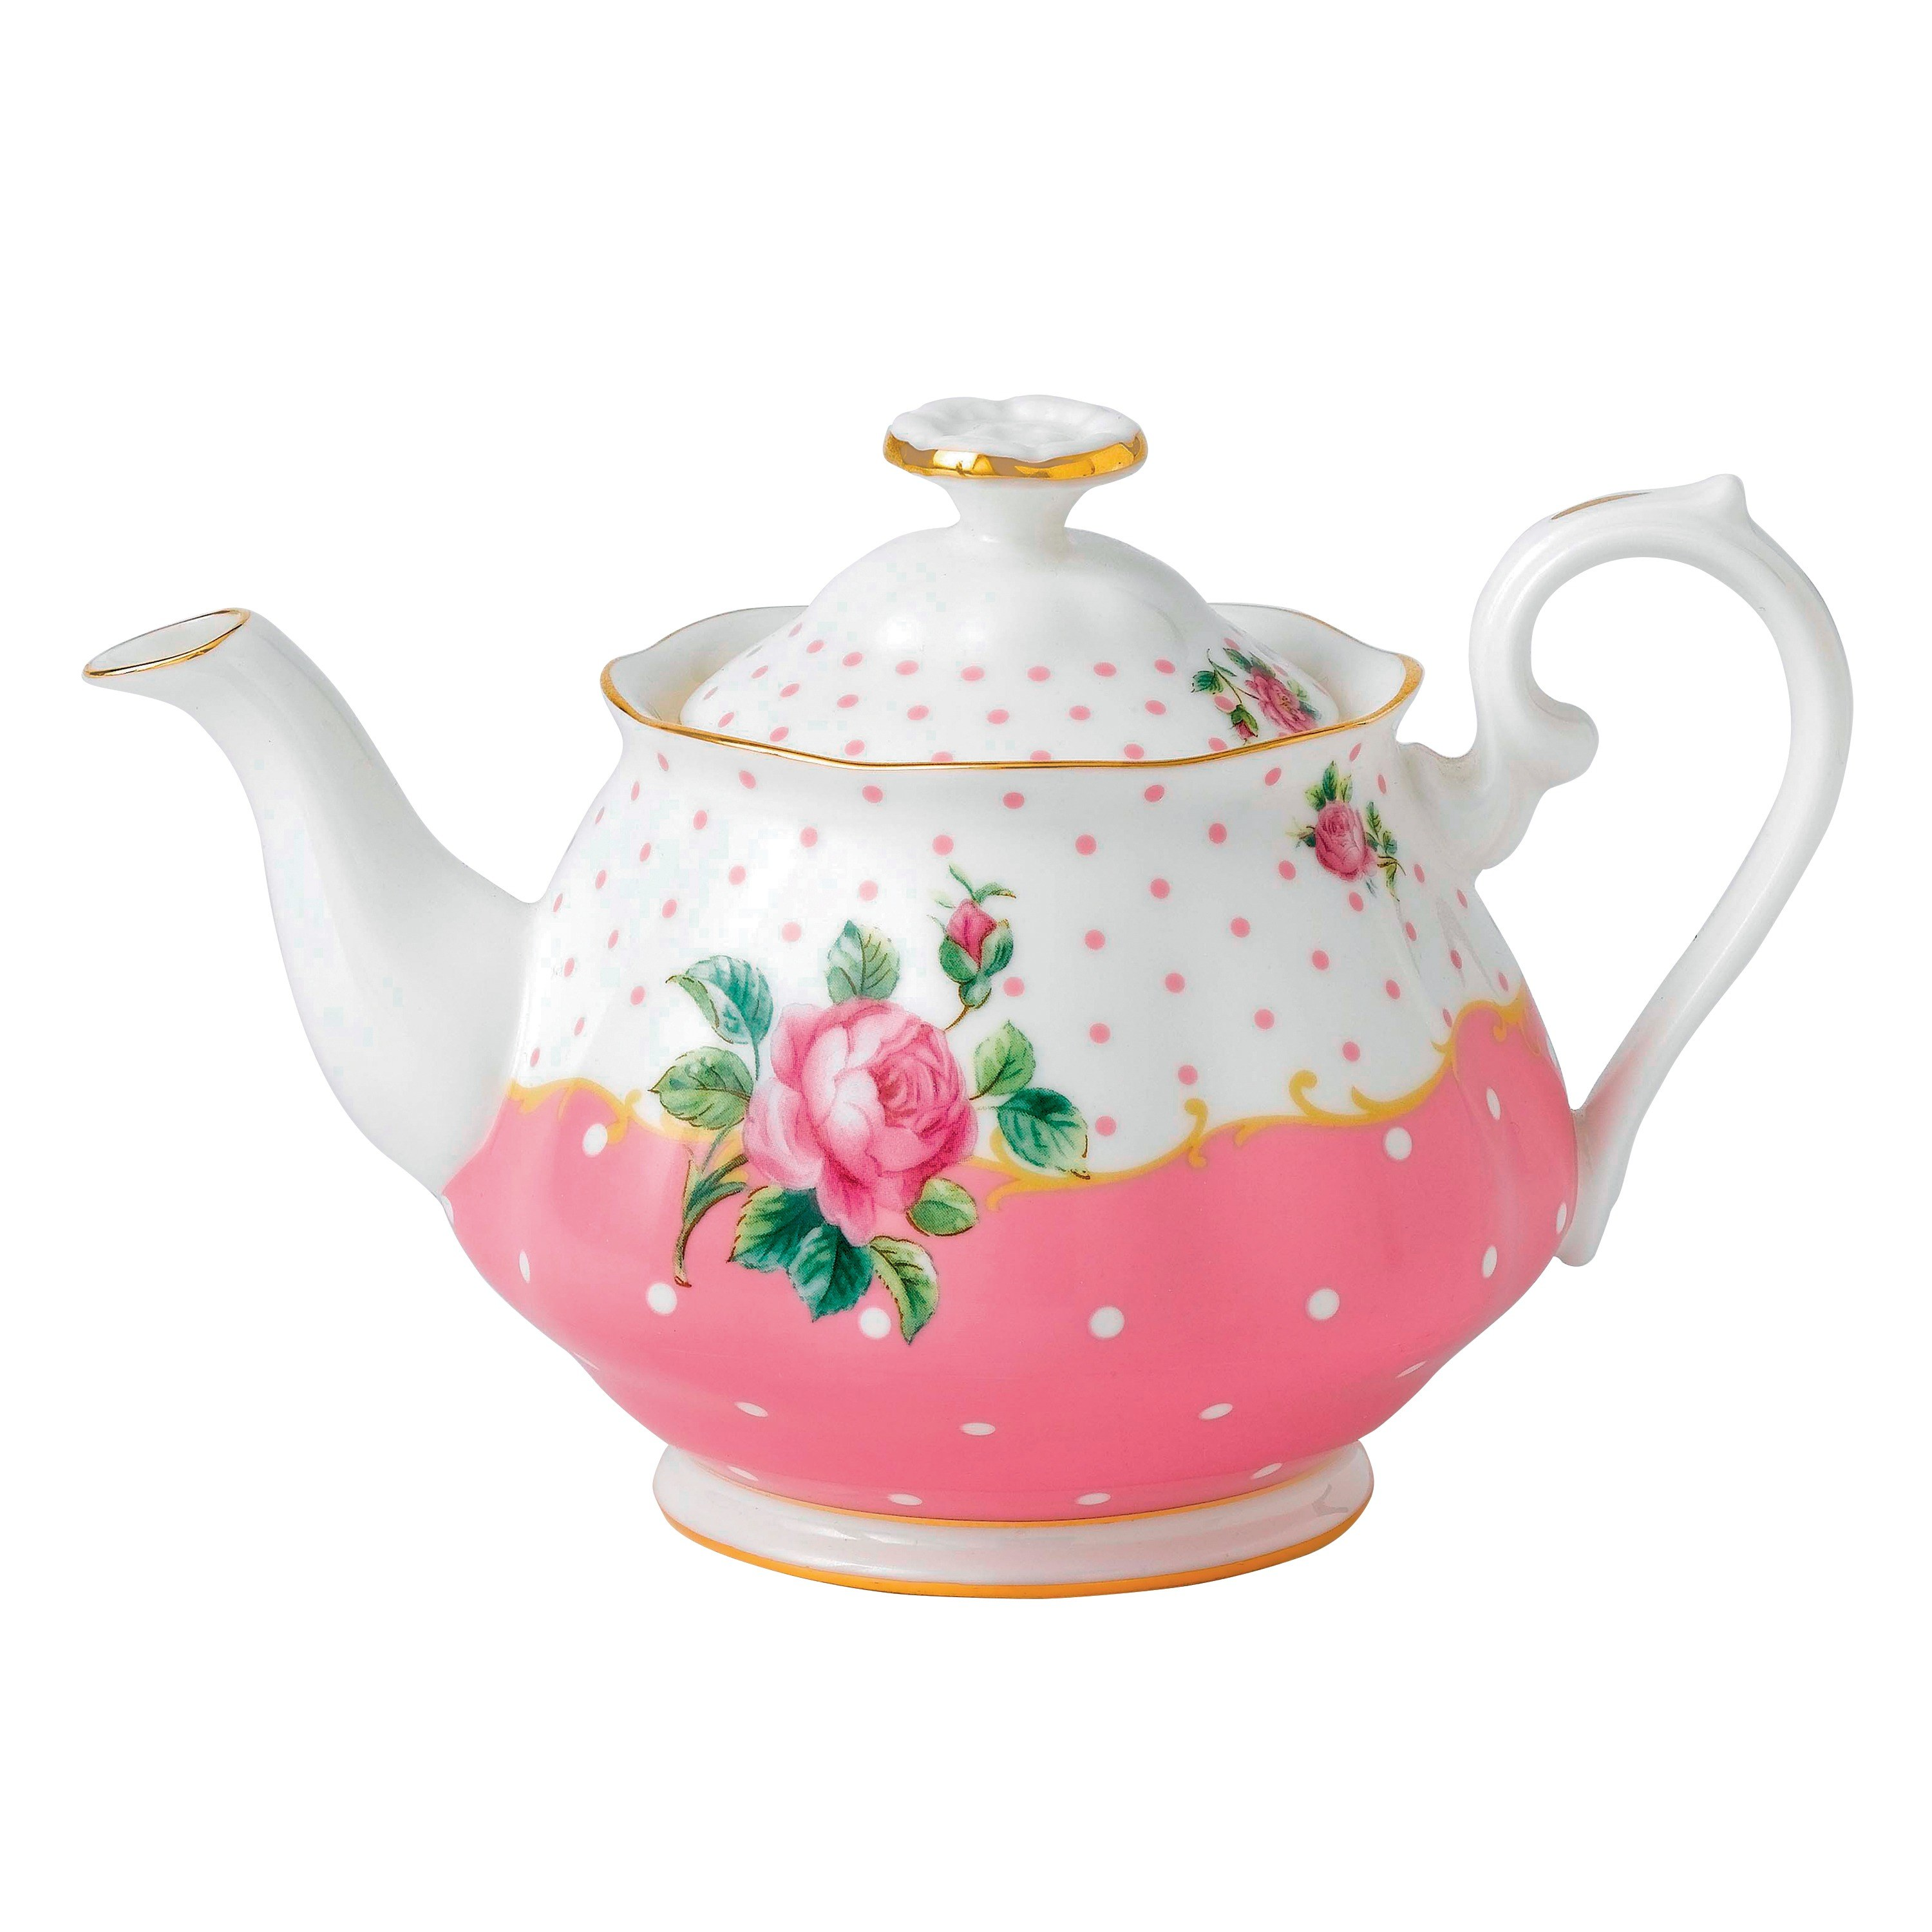 Cheeky Pink Teapot Small